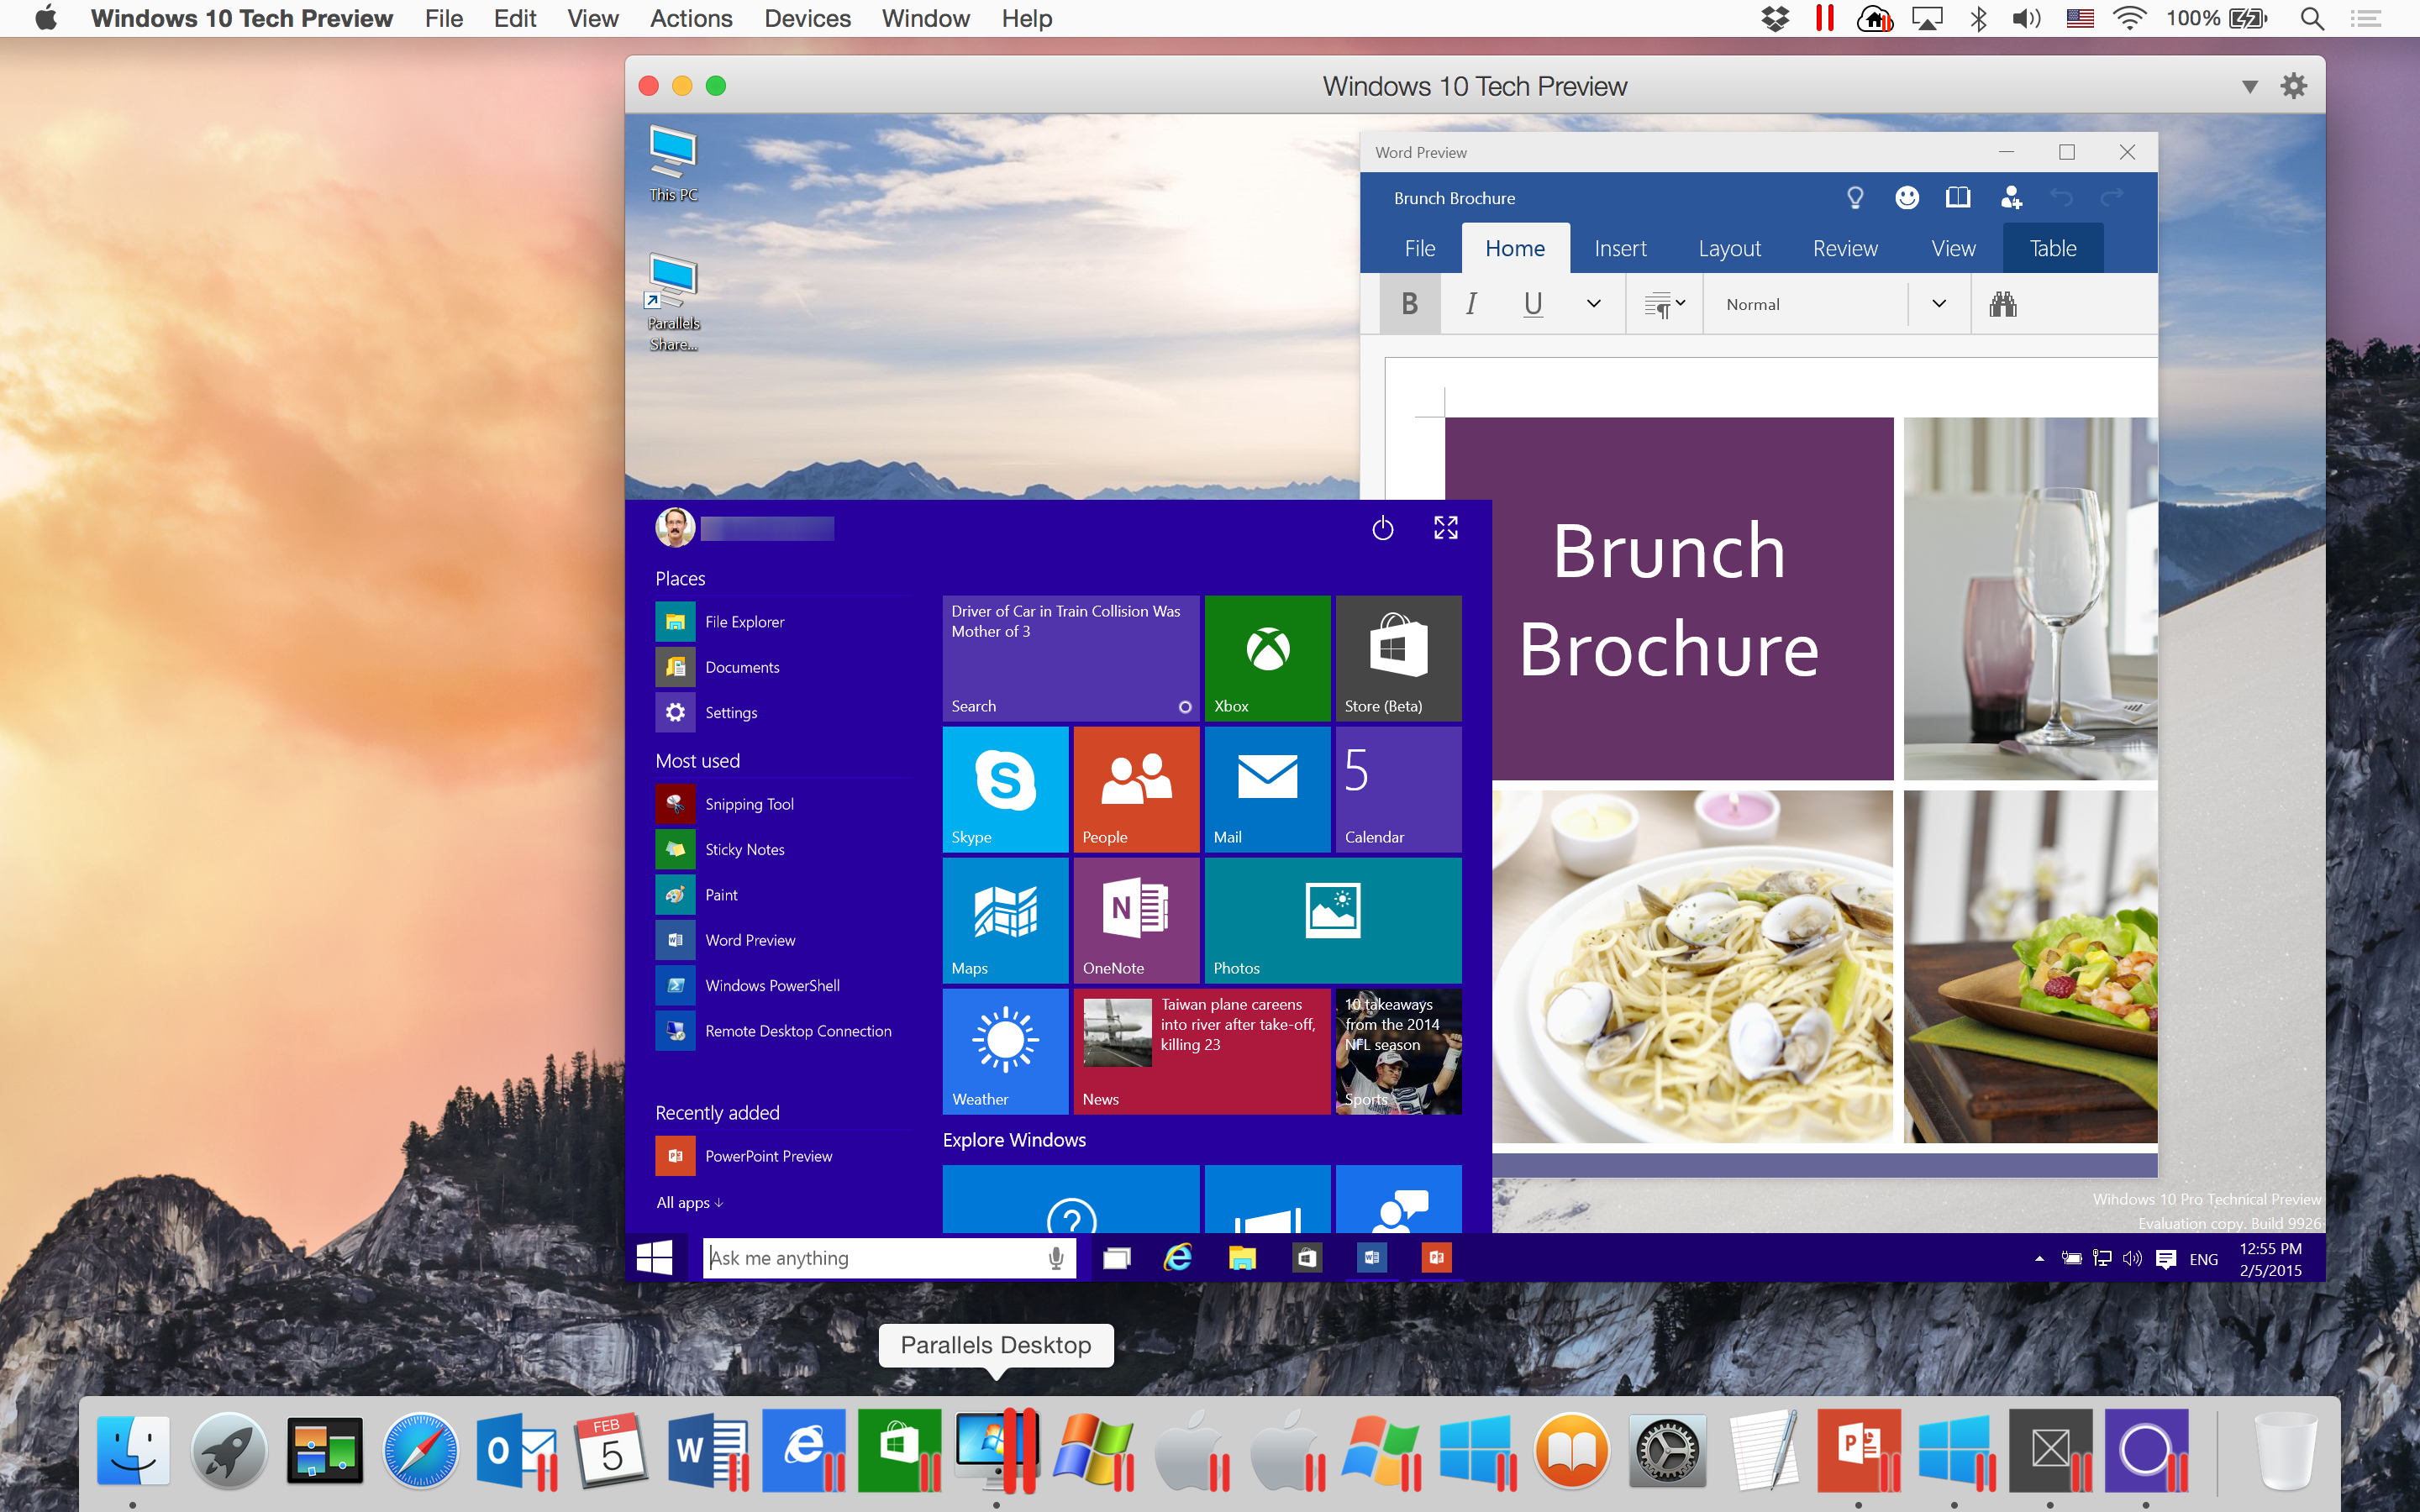 Windows 10 Tech Preview in Parallels Desktop 10 on Mac OS X Yosemite